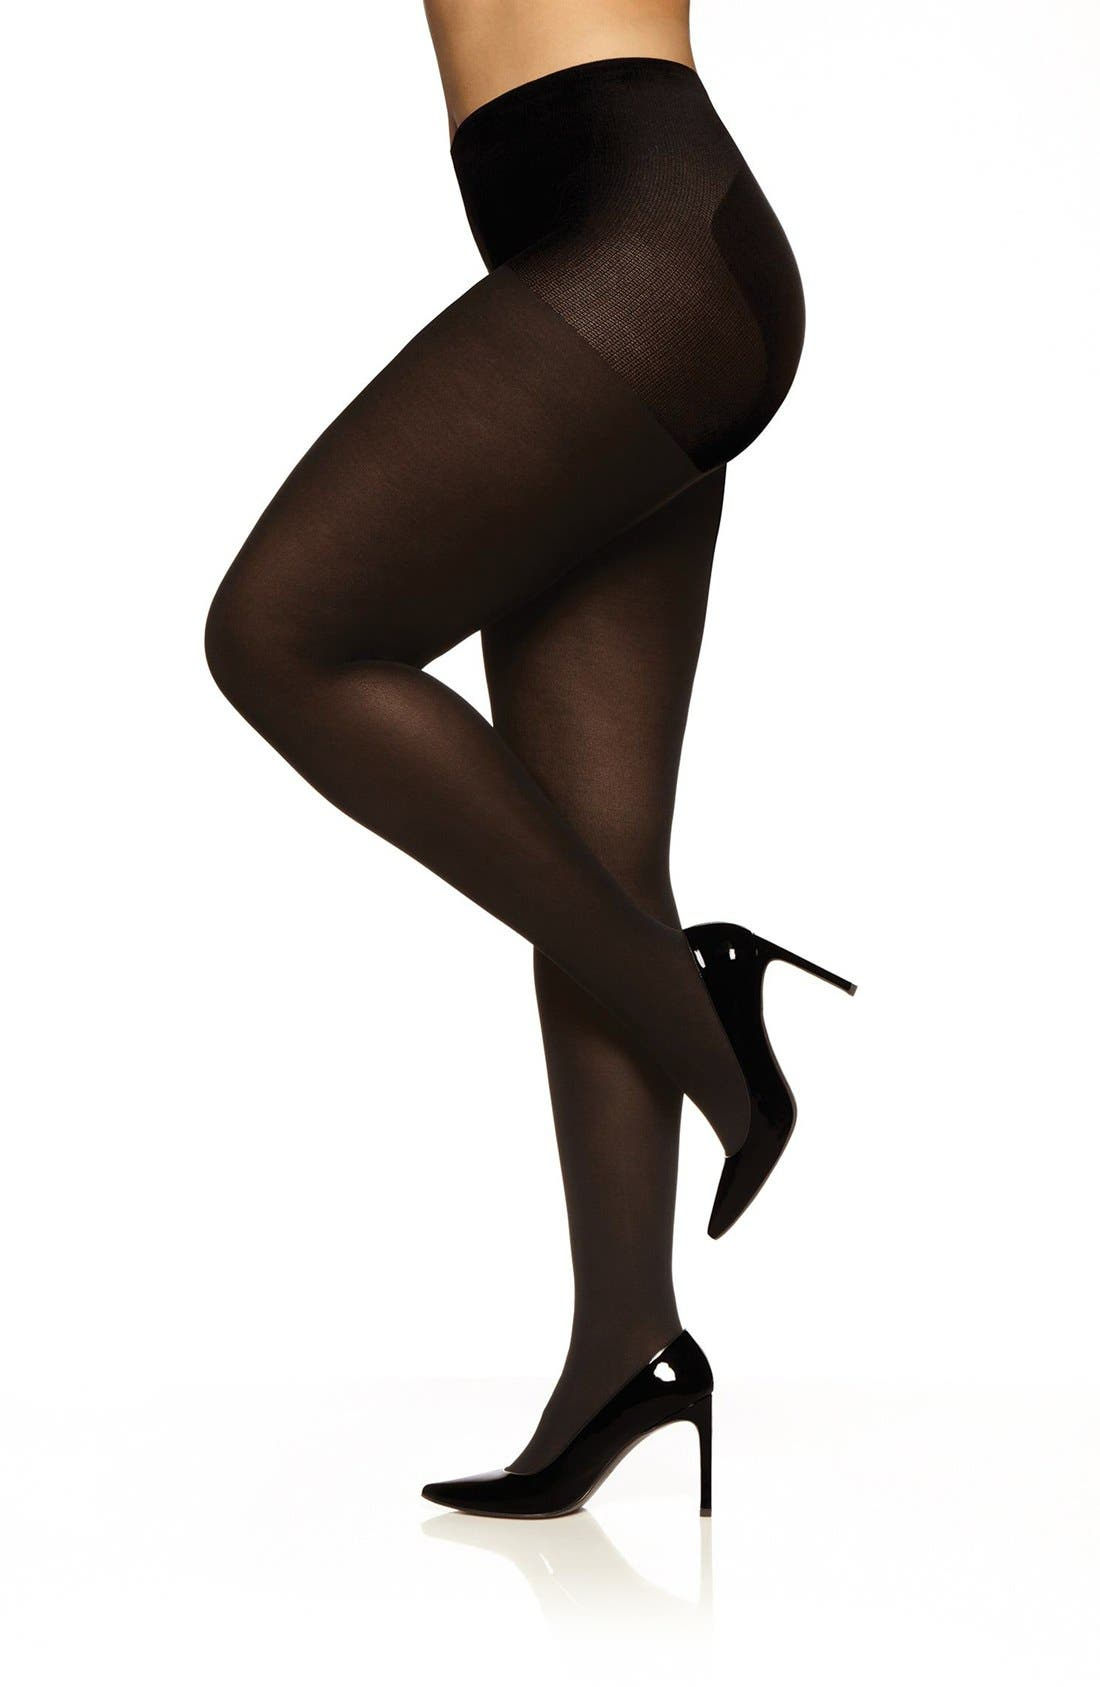 Easy-On Tights,                         Main,                         color, Black